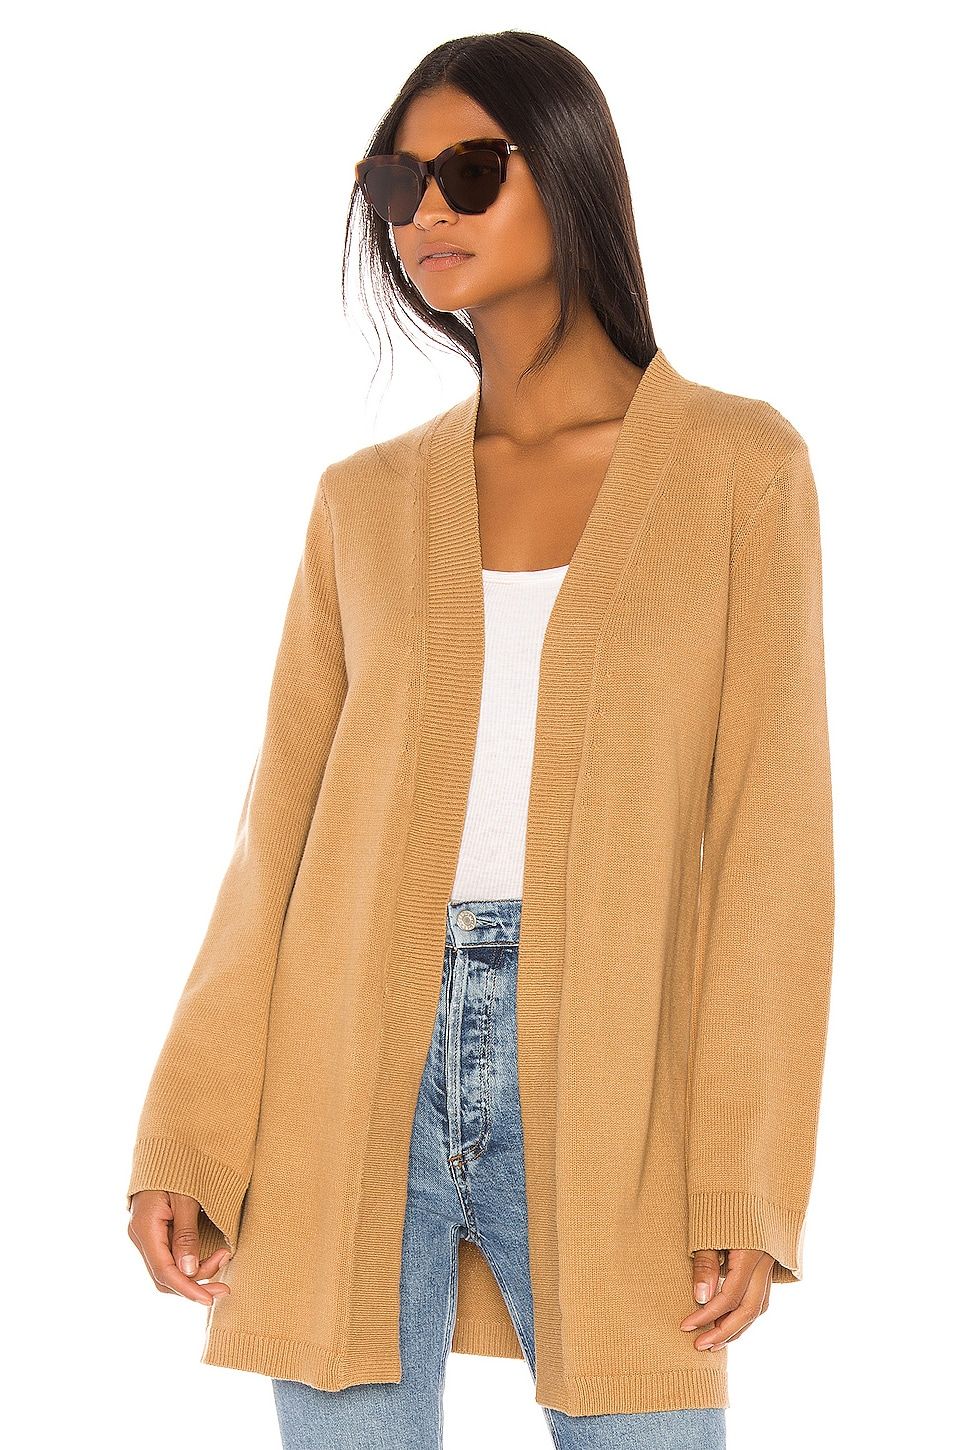 House of Harlow 1960 X REVOLVE Camena Cardigan in Camel